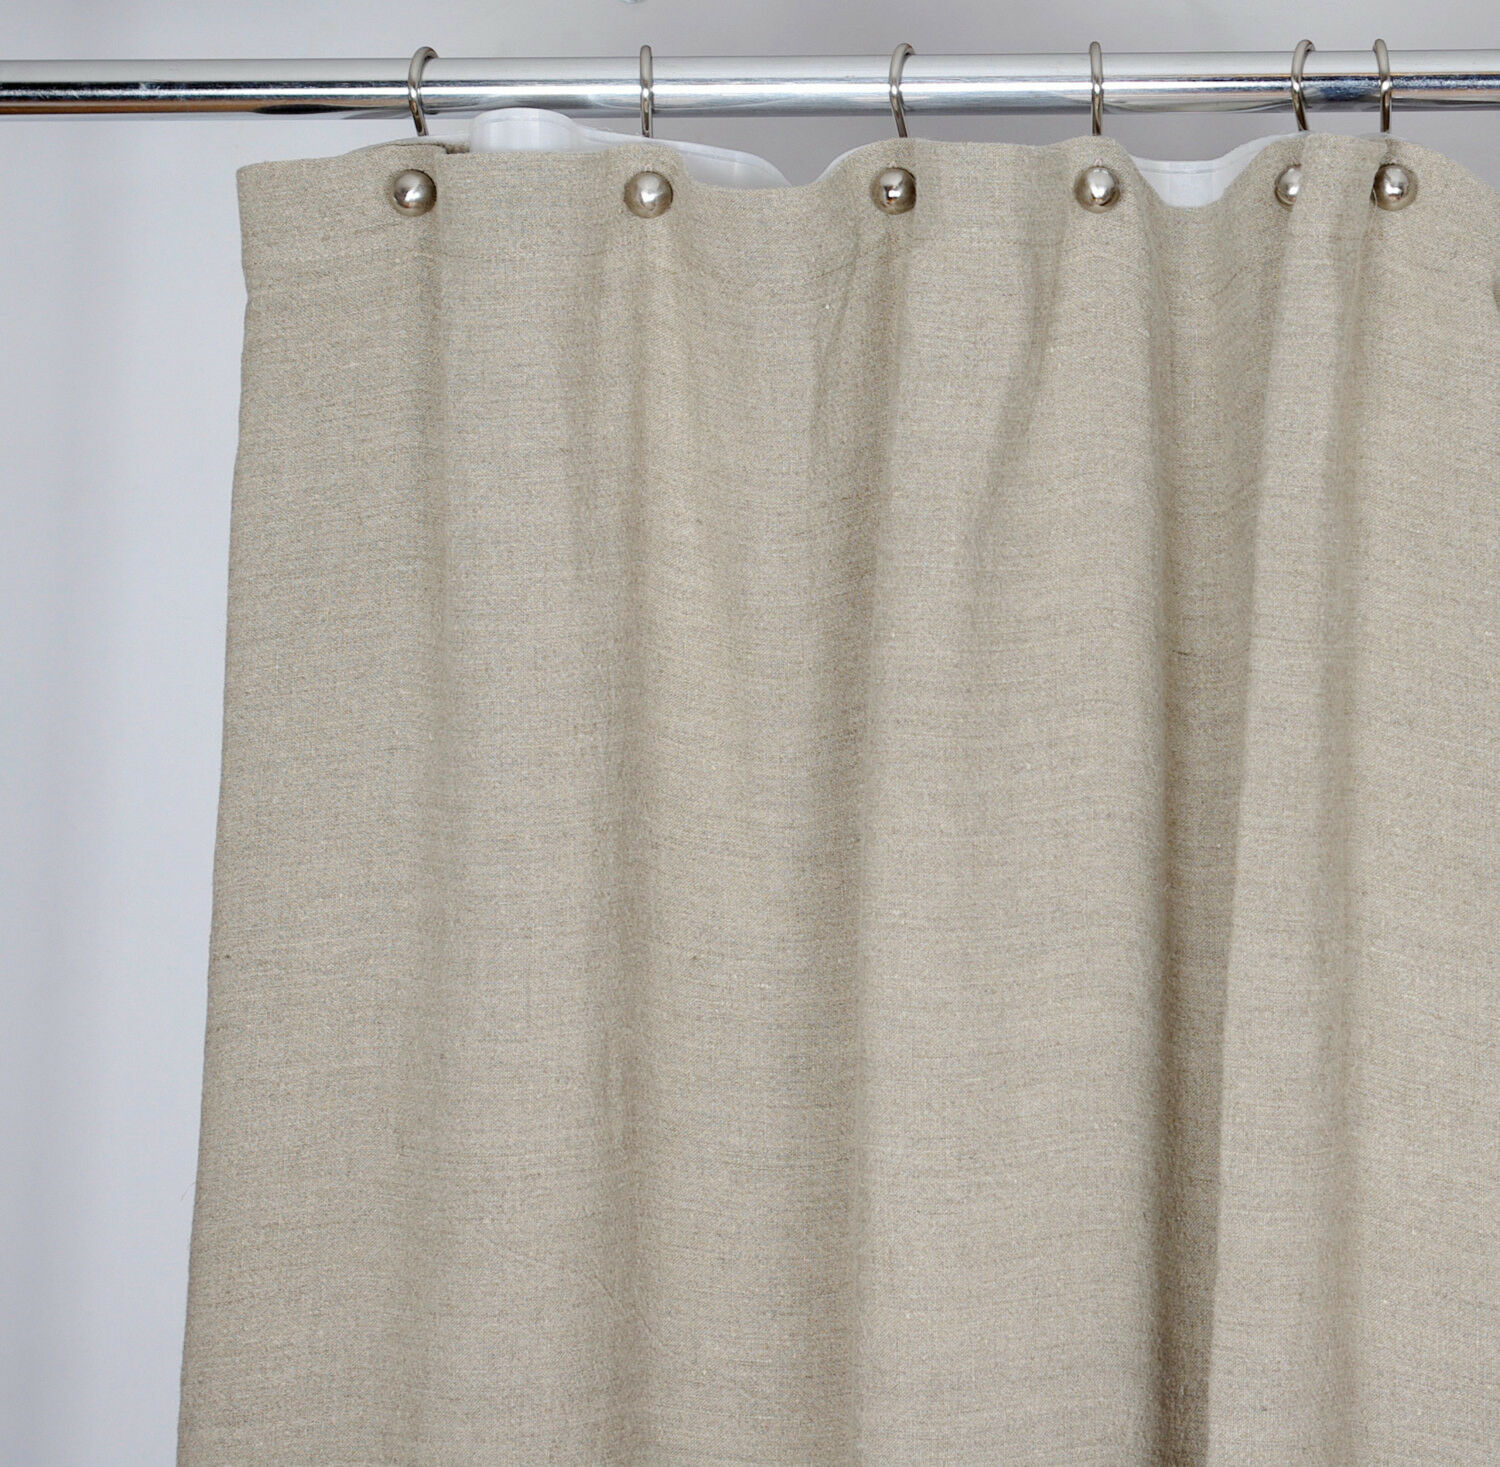 Washed 100 Linen Shower Curtain 72x72 Inch Bath French Country Beige Ivory 945a3a